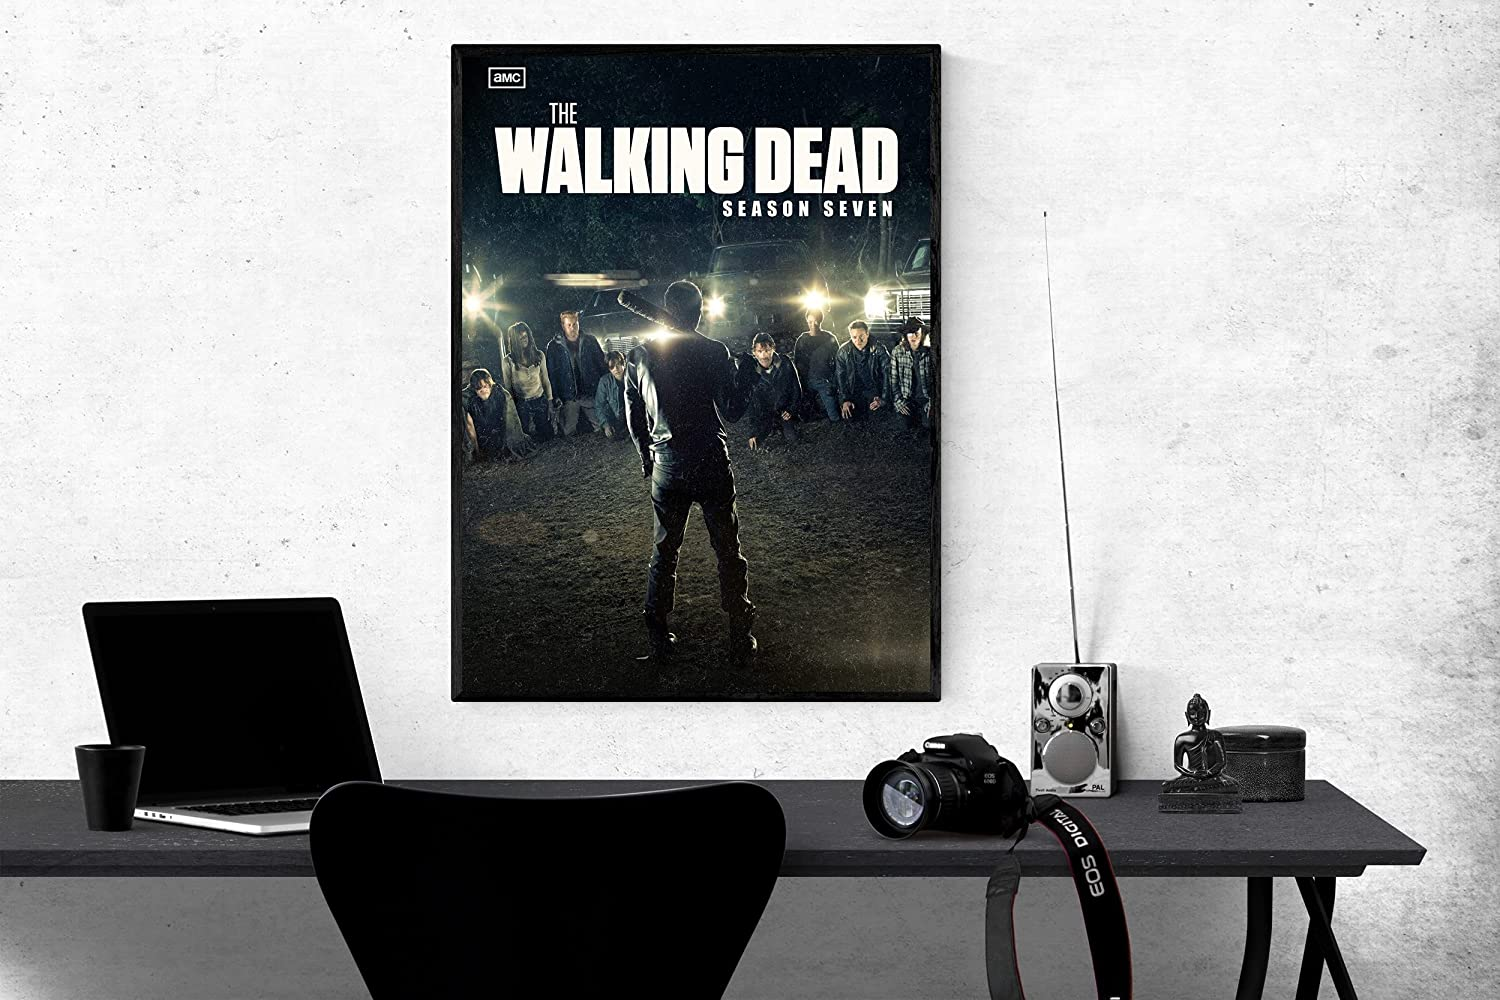 Poster Compatible With The Walking Dead Season 7, American Neo-Western Series for Walls, Unframed Posters Print, Cool Home Decor, Unique Design, Wall Art Decor for Room